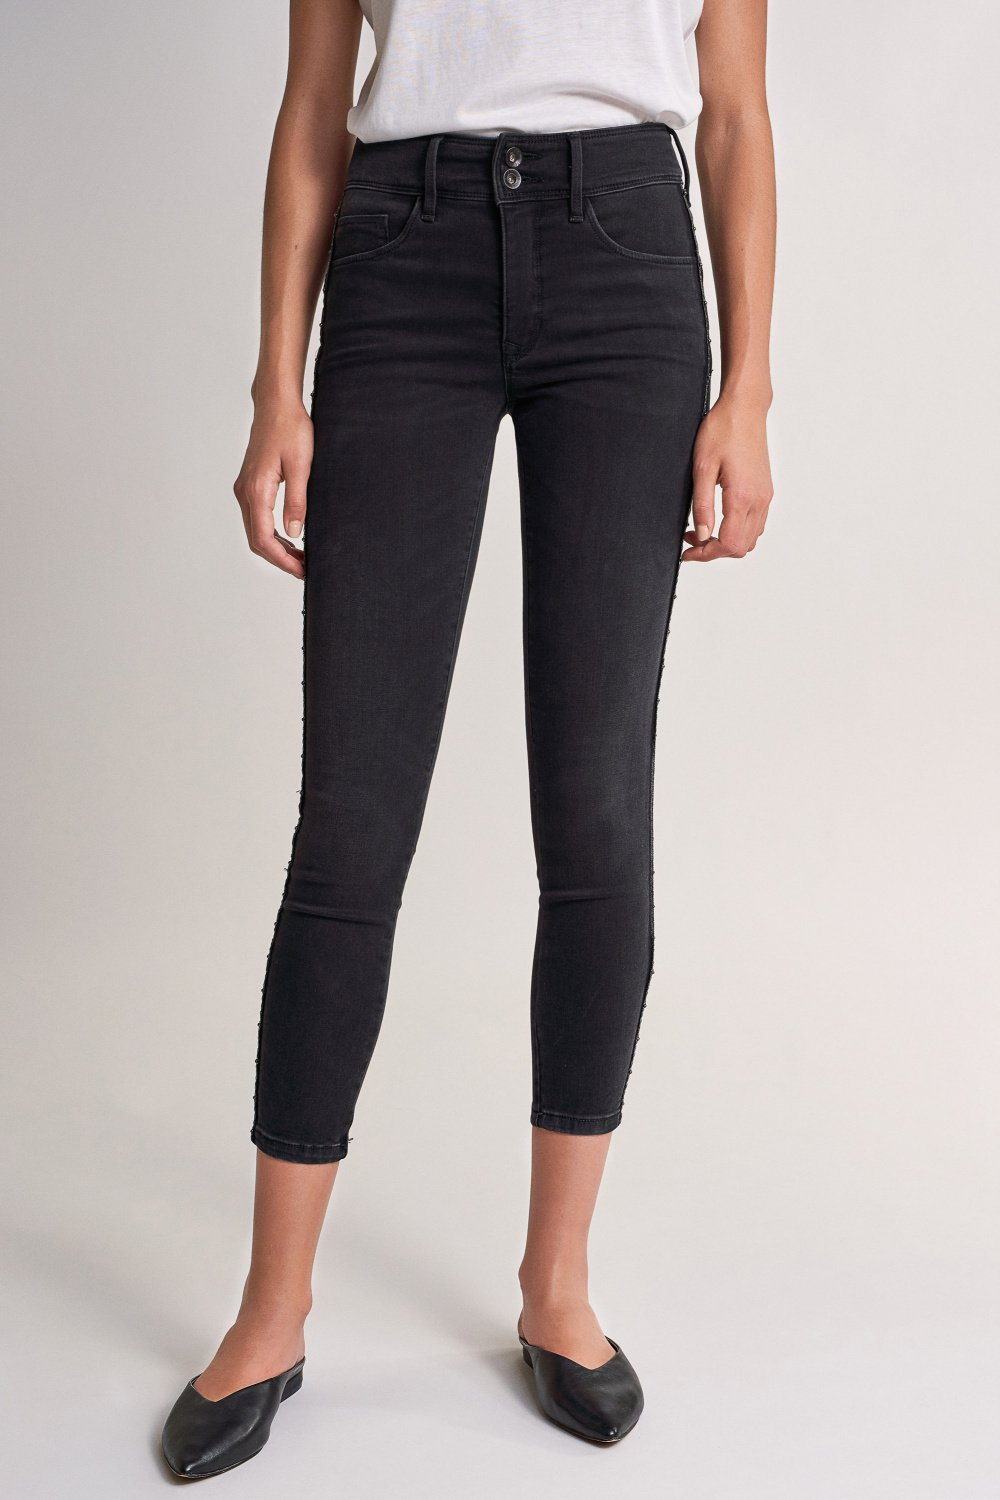 Push In Secret capri jeans with side strip - Salsa